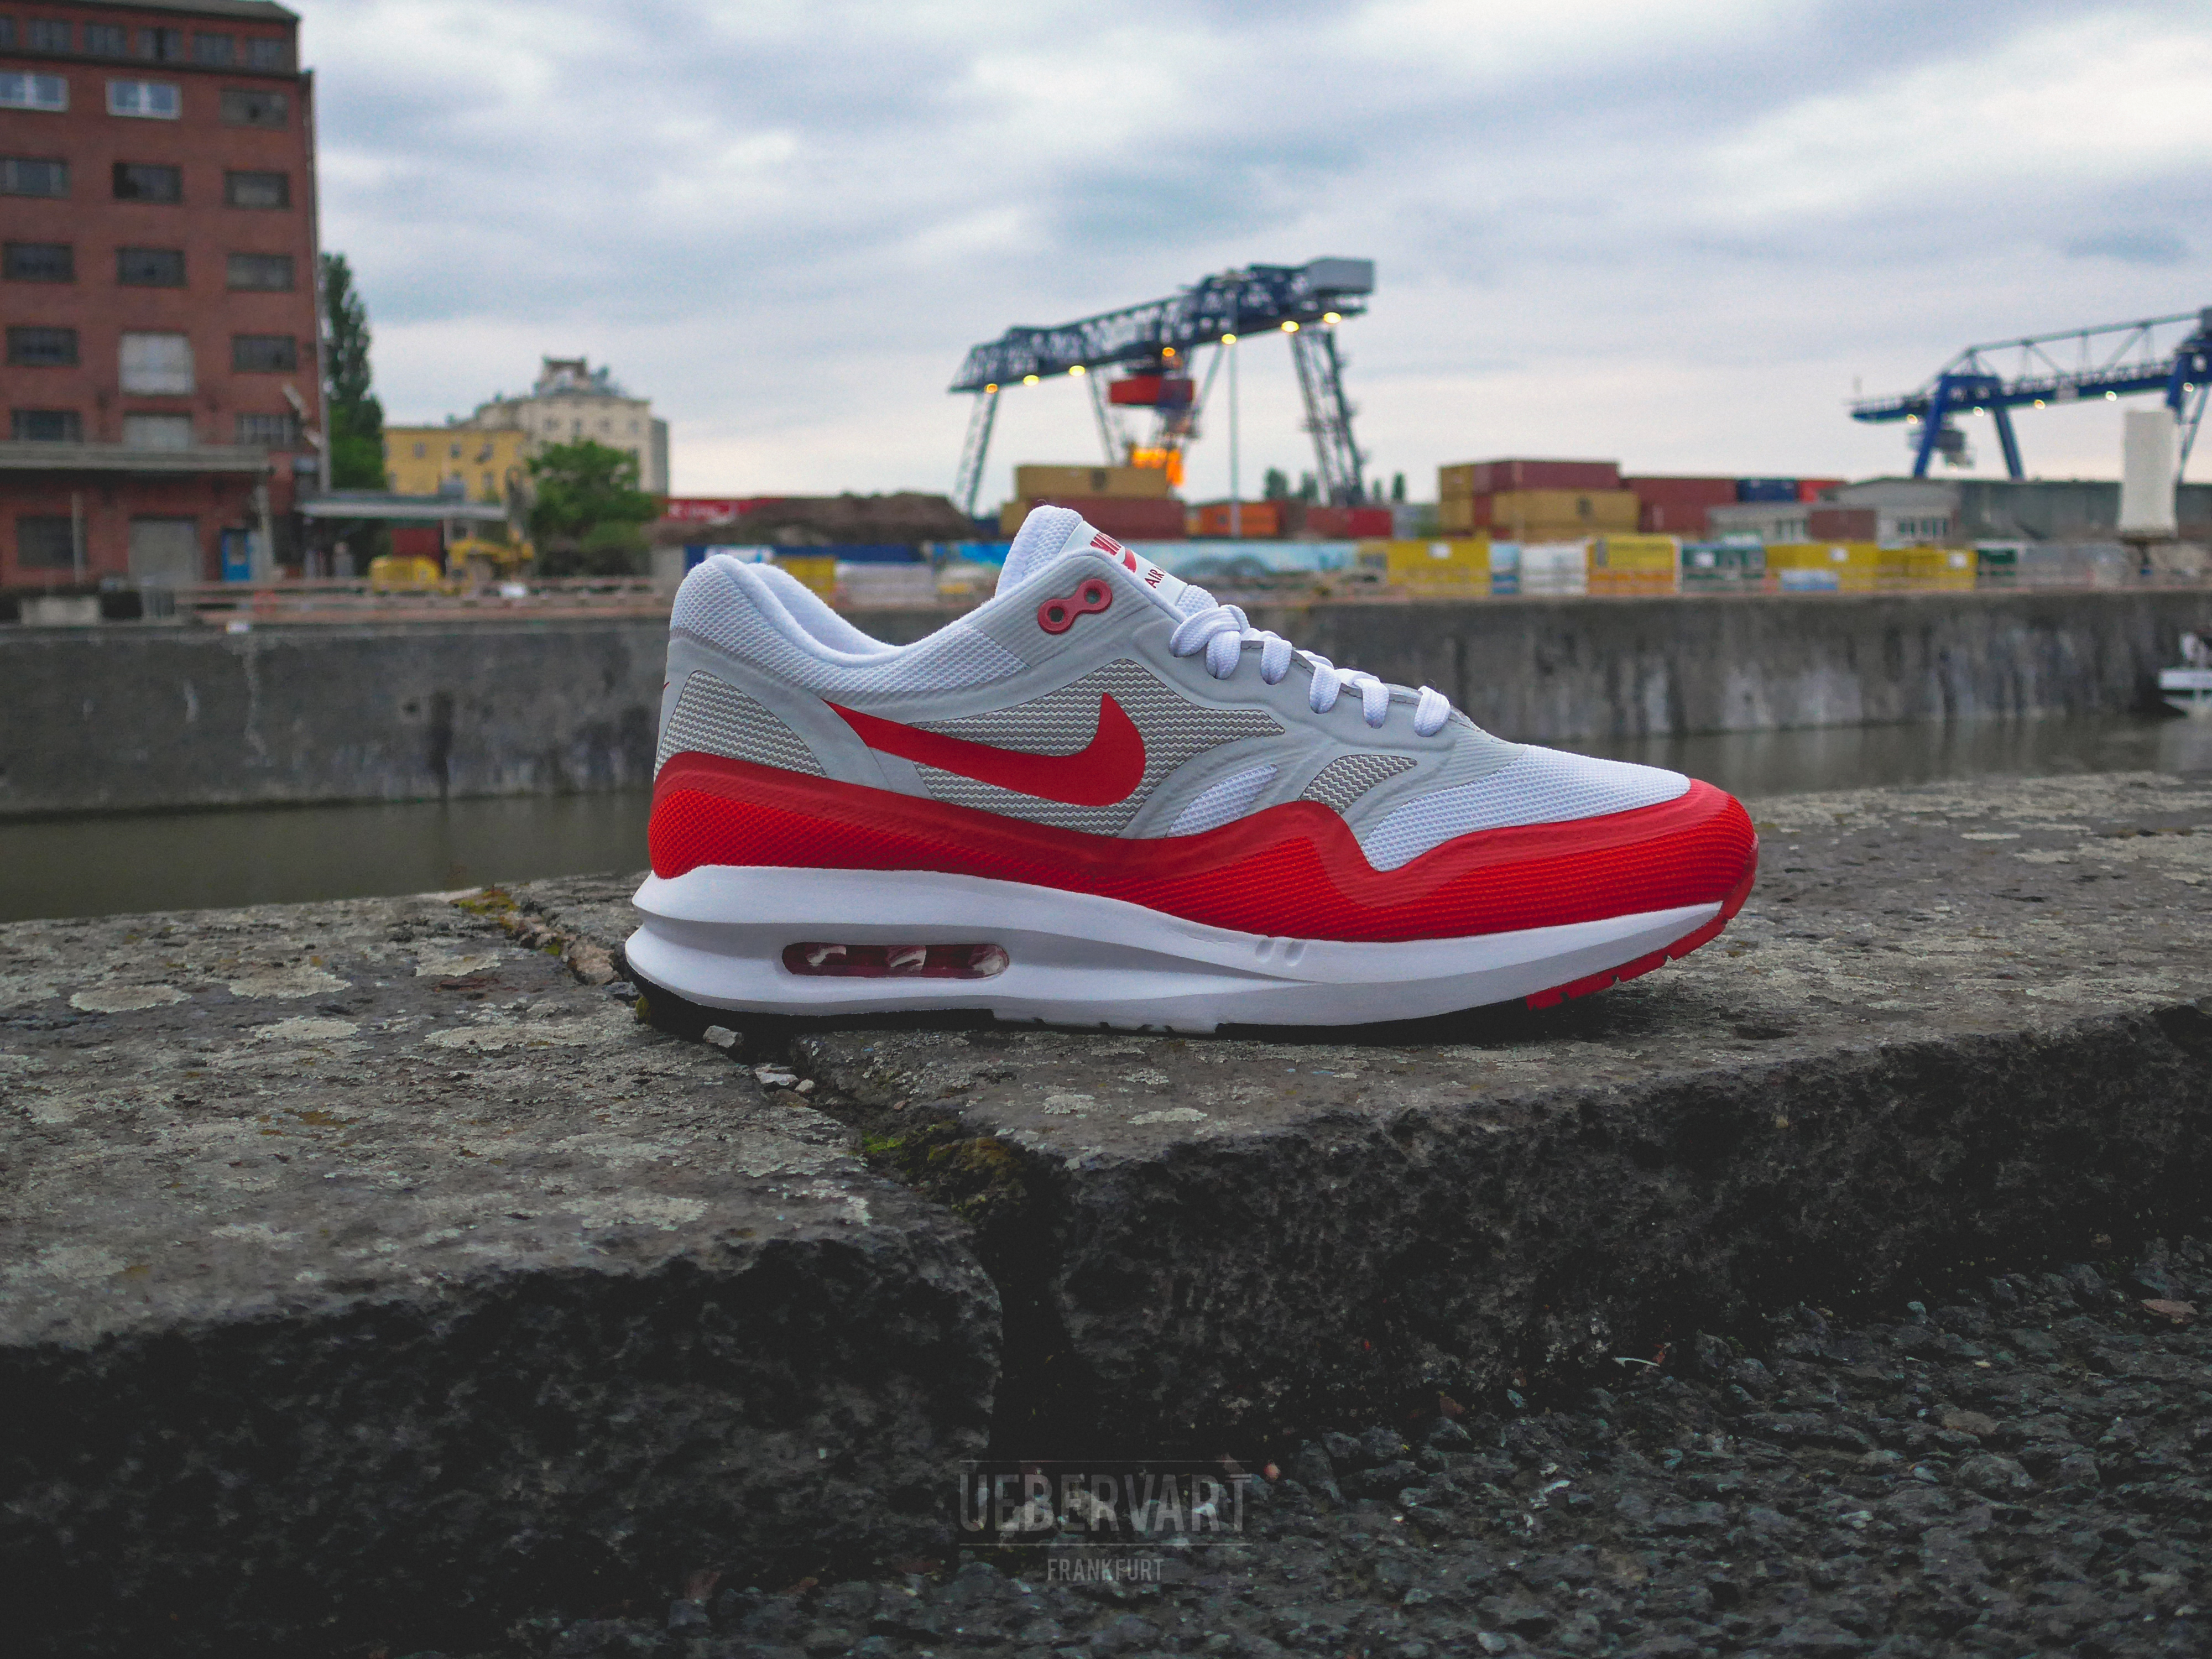 Nike Air Max Lunar 1 Chiling Red